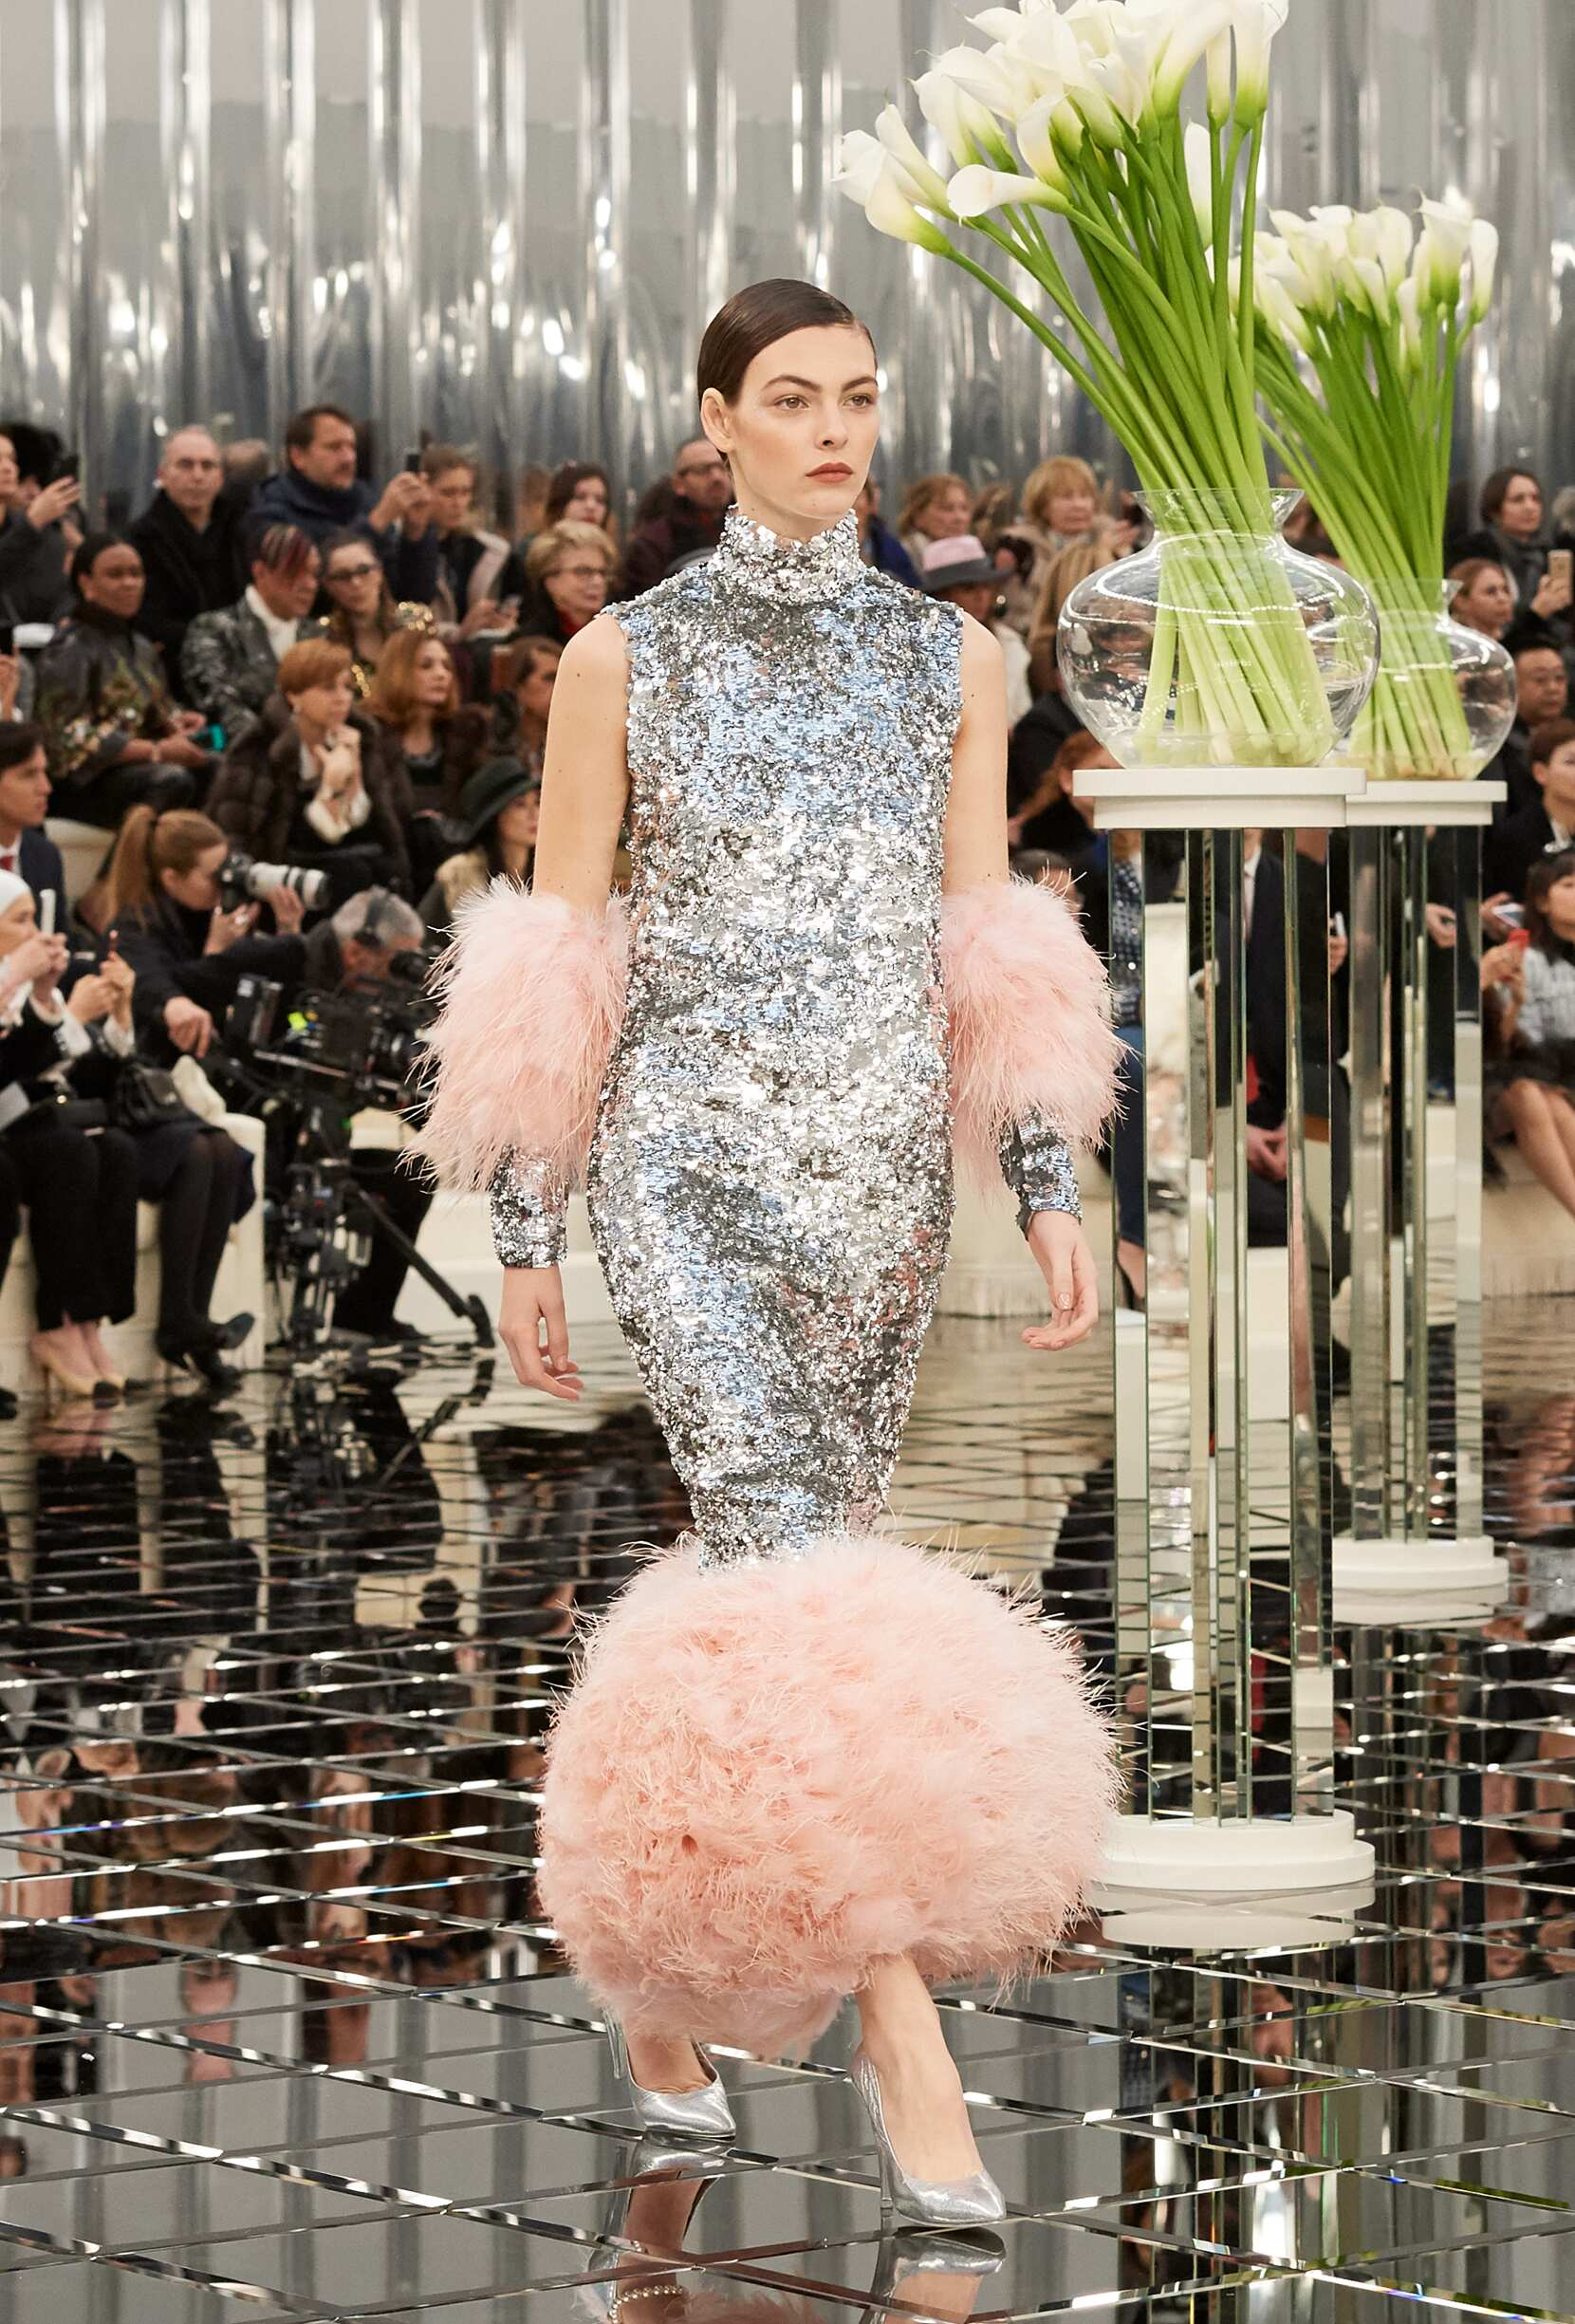 Womenswear SS Chanel Couture 2017-2018